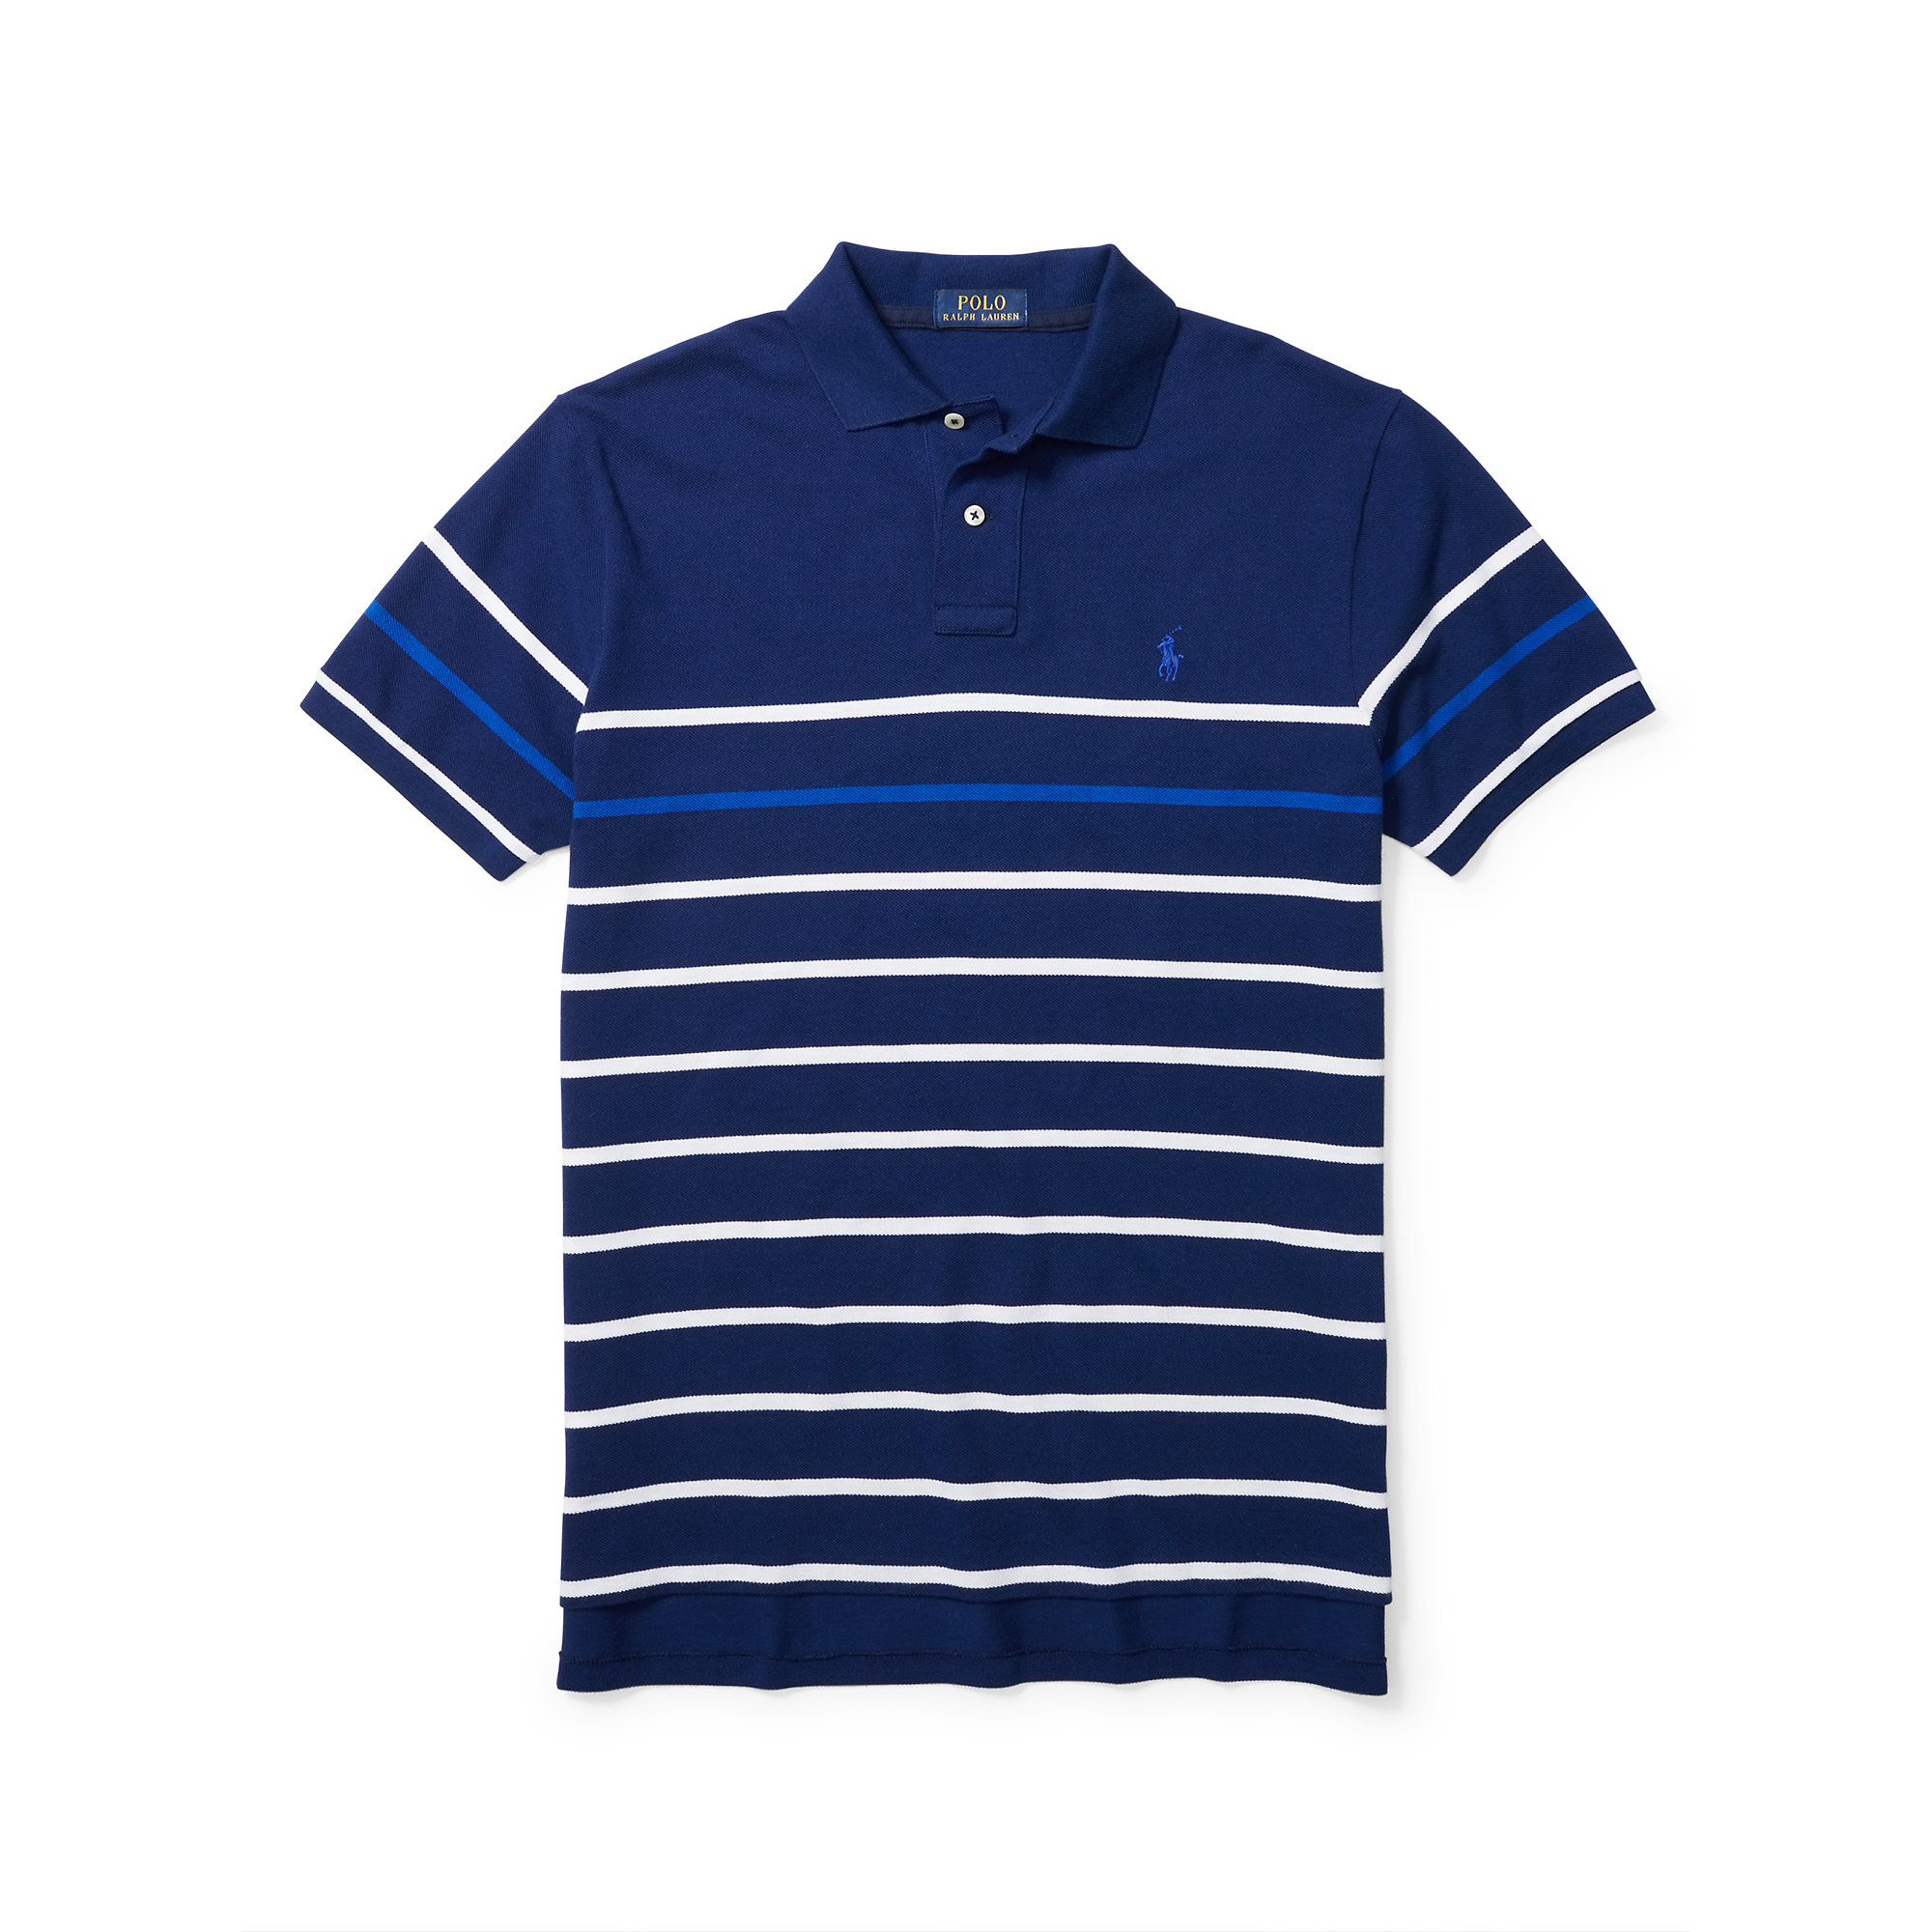 Buy the latest striped polo shirt cheap shop fashion style with free shipping, and check out our daily updated new arrival striped polo shirt at imaginary-7mbh1j.cf